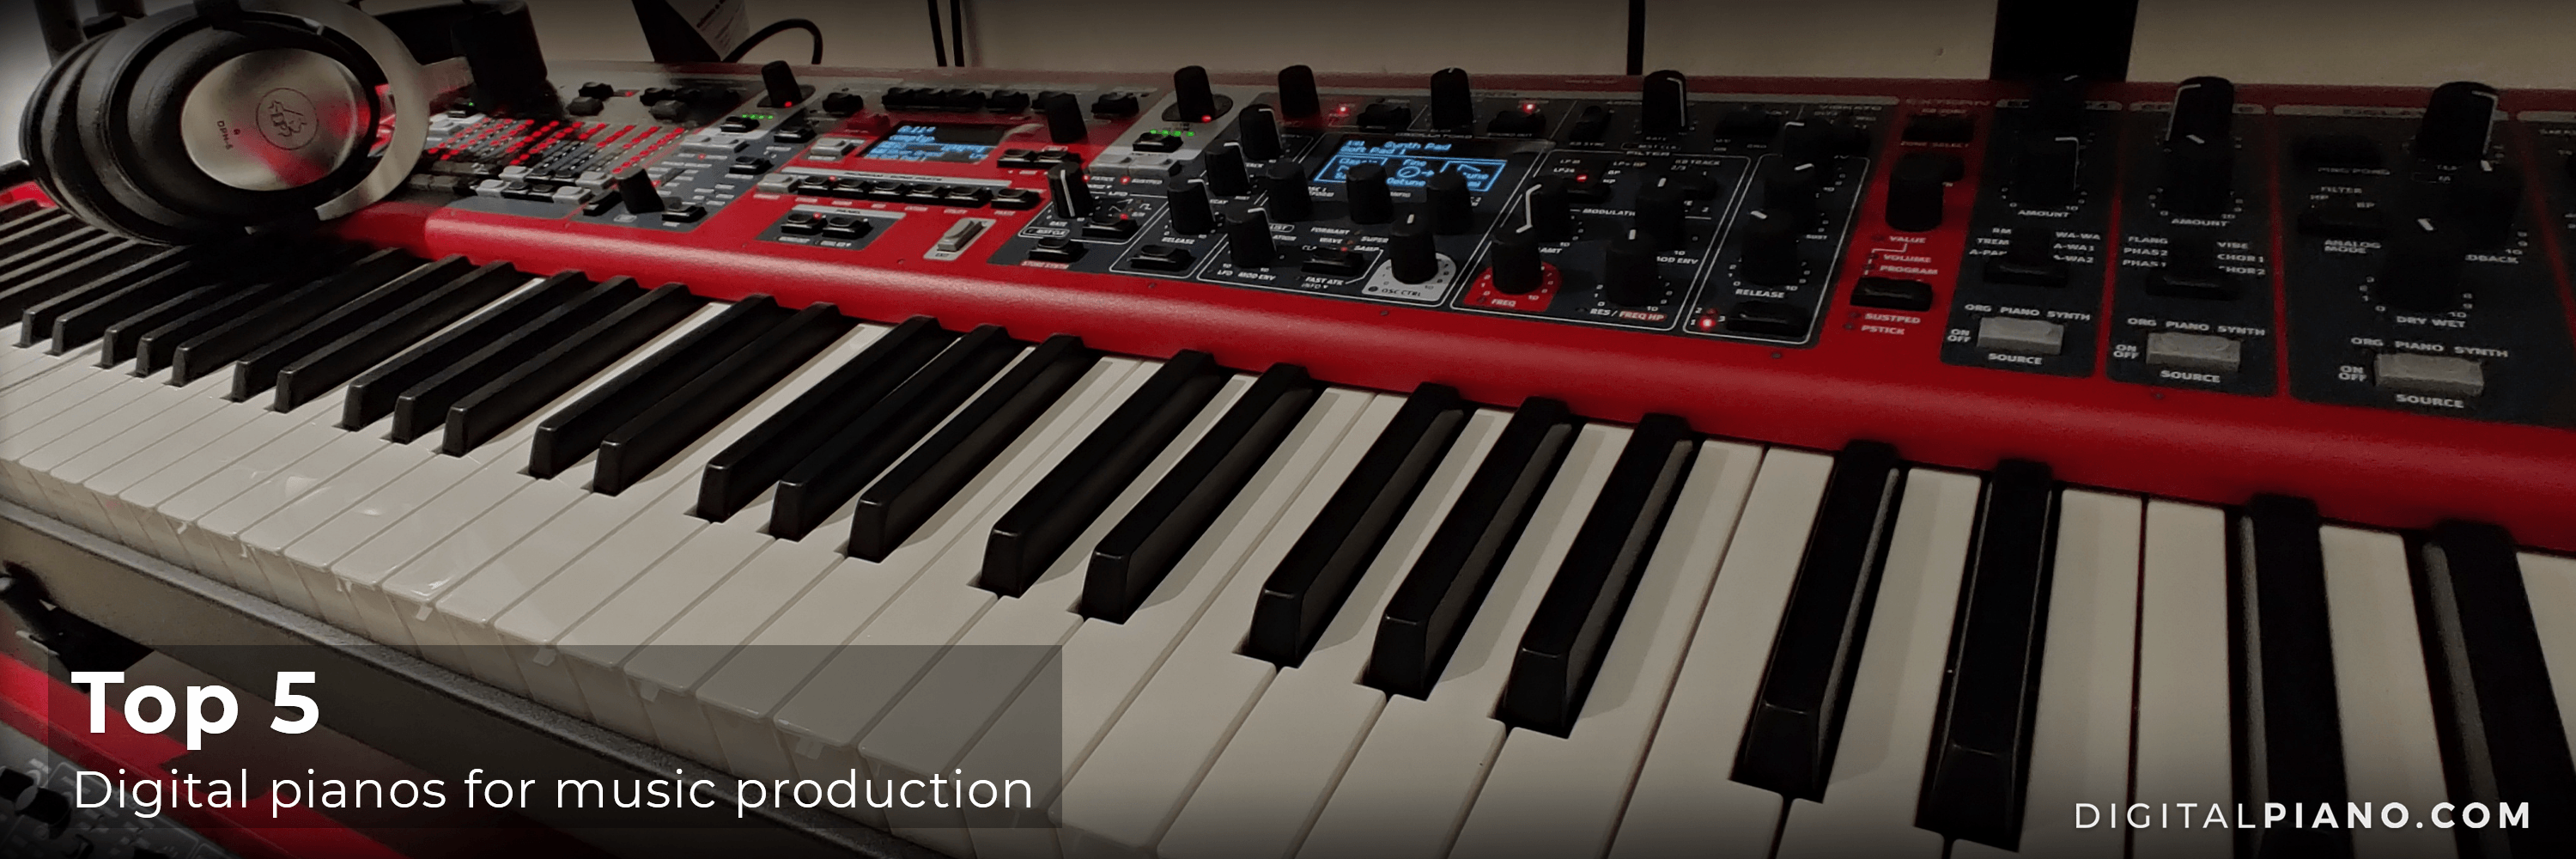 Top 5 Keyboards for writing your own music